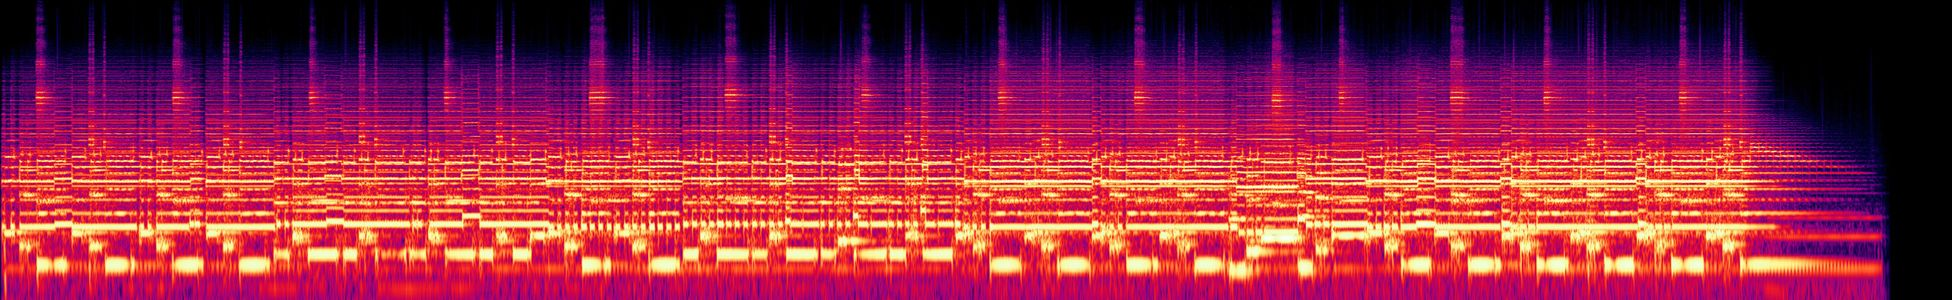 Plodding Power - Spectrogram.jpg